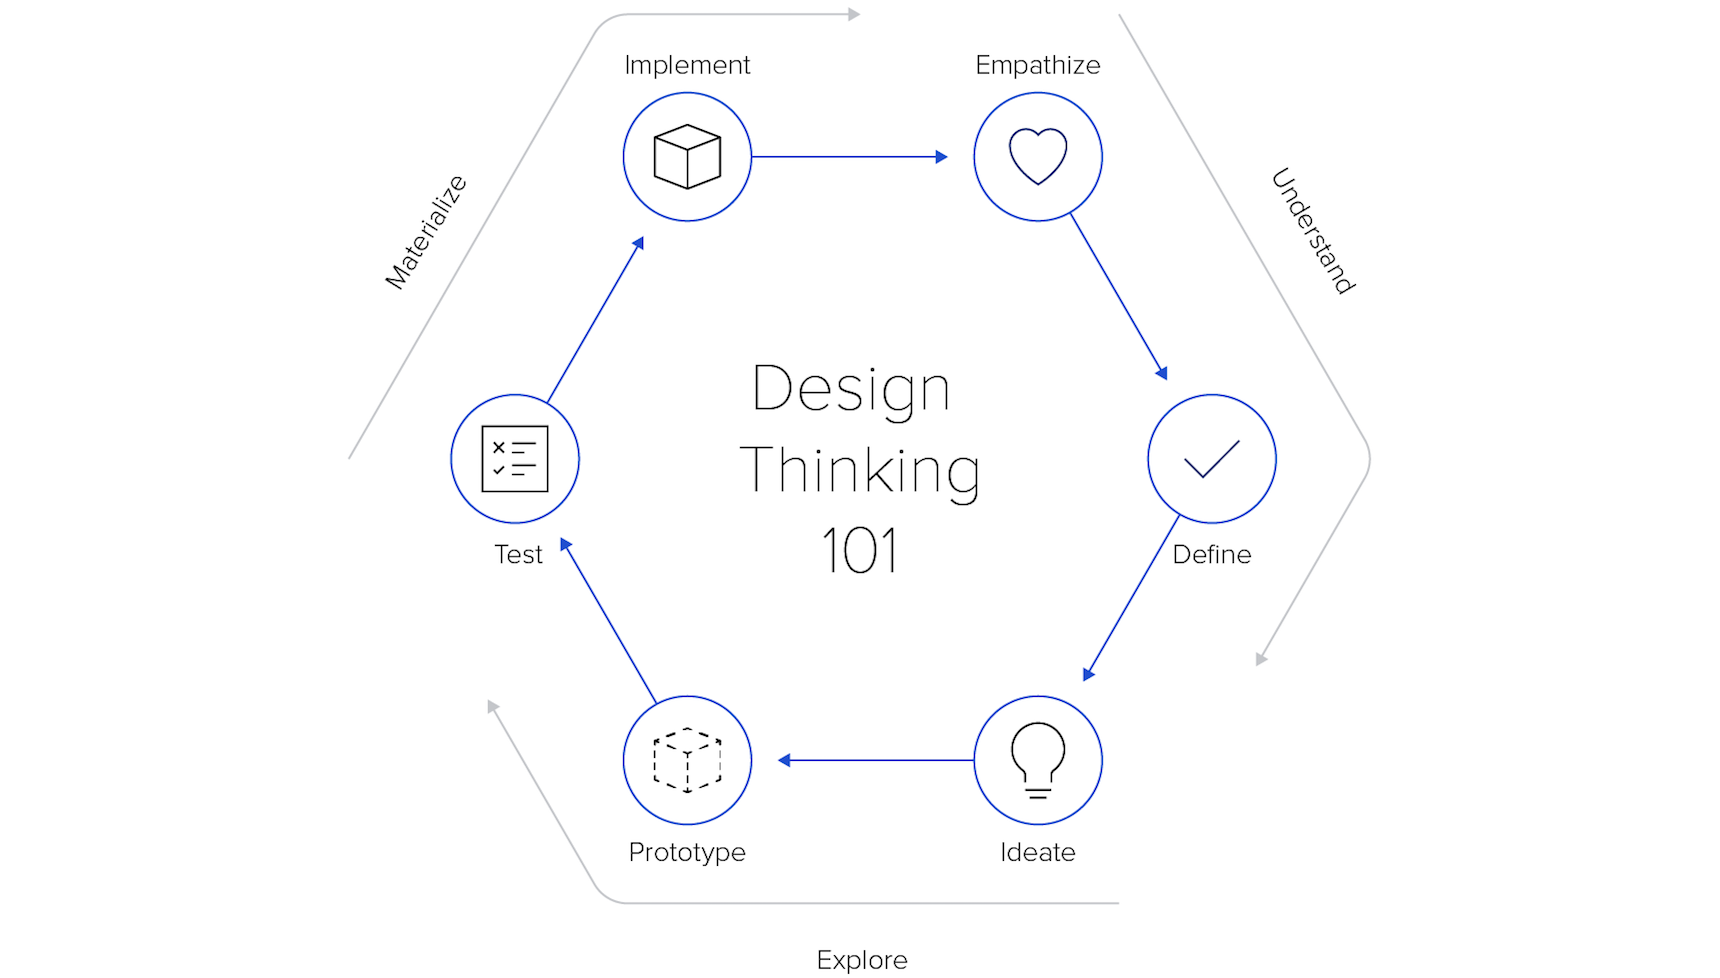 The design thinking framework